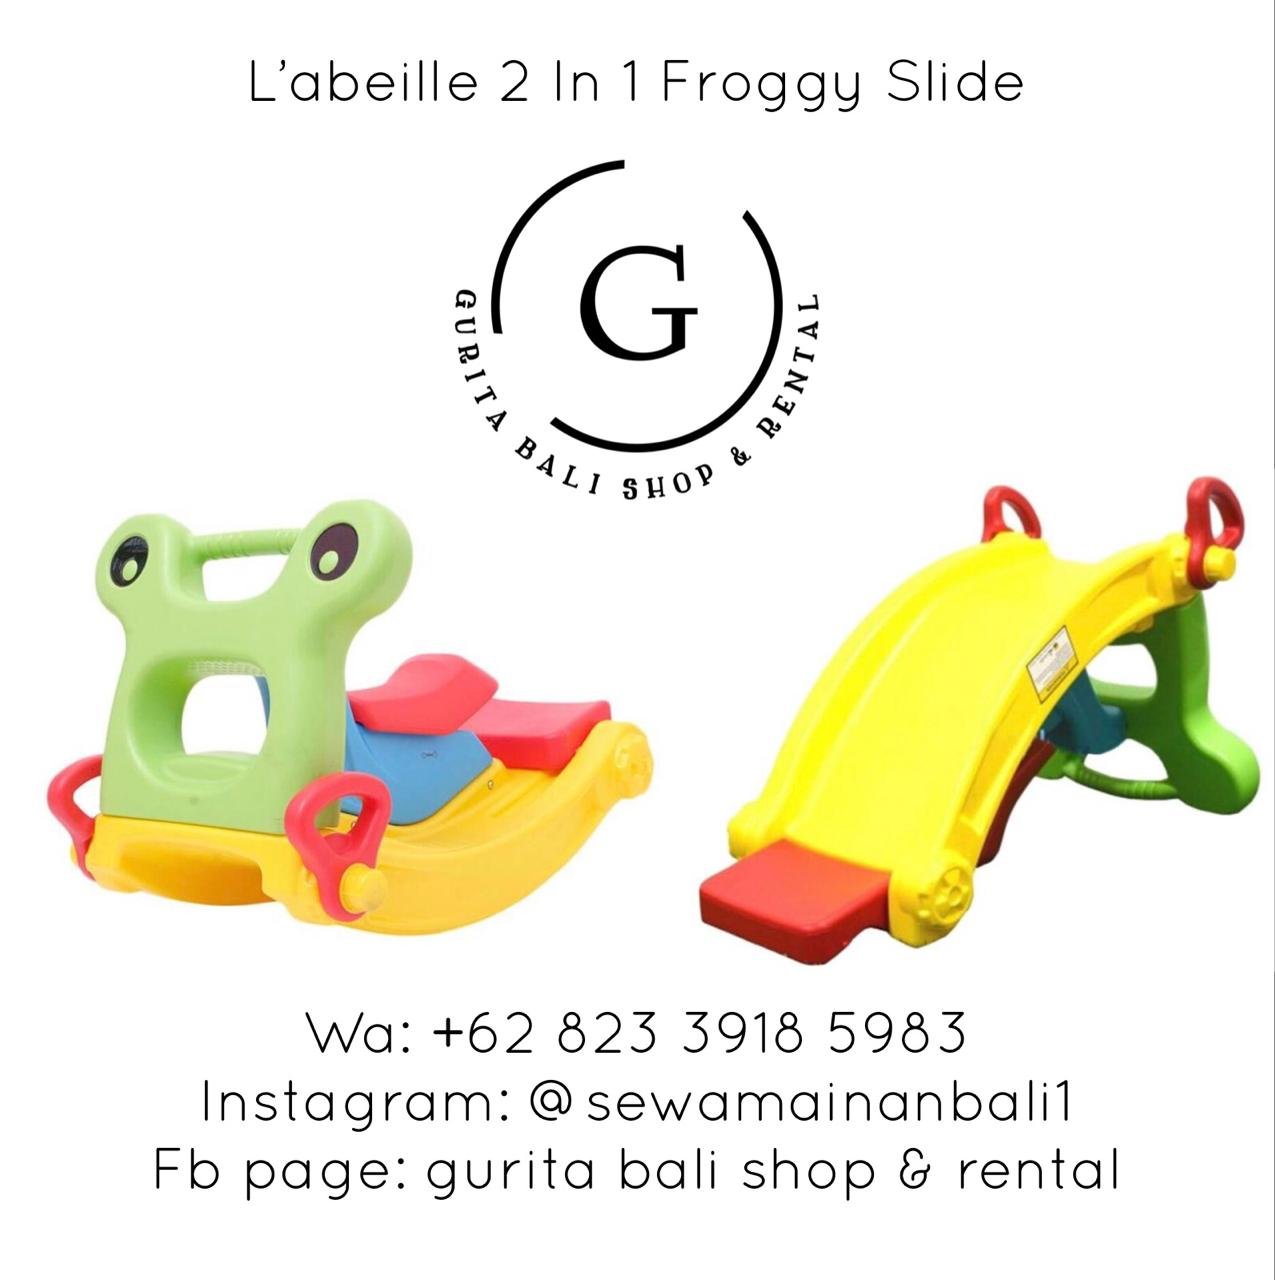 L'ABEILLE 2 IN 1 FROGGY SLIDE